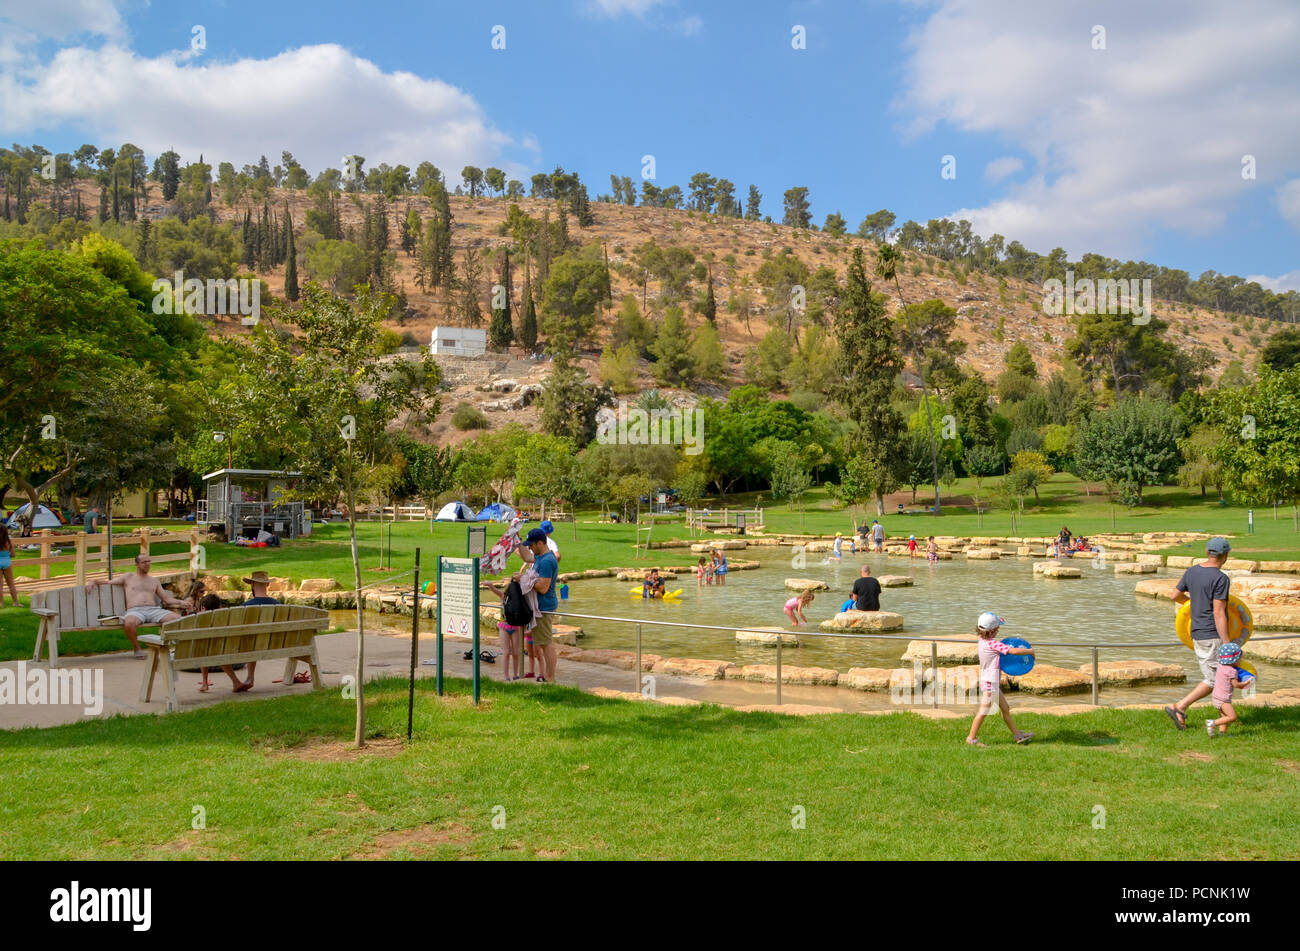 Israel, Jezreel Valley, Maayan Harod the Spring of Harod National Park. The spring at Harod is believed to be the 'well of Harod' at which Gideon sele - Stock Image